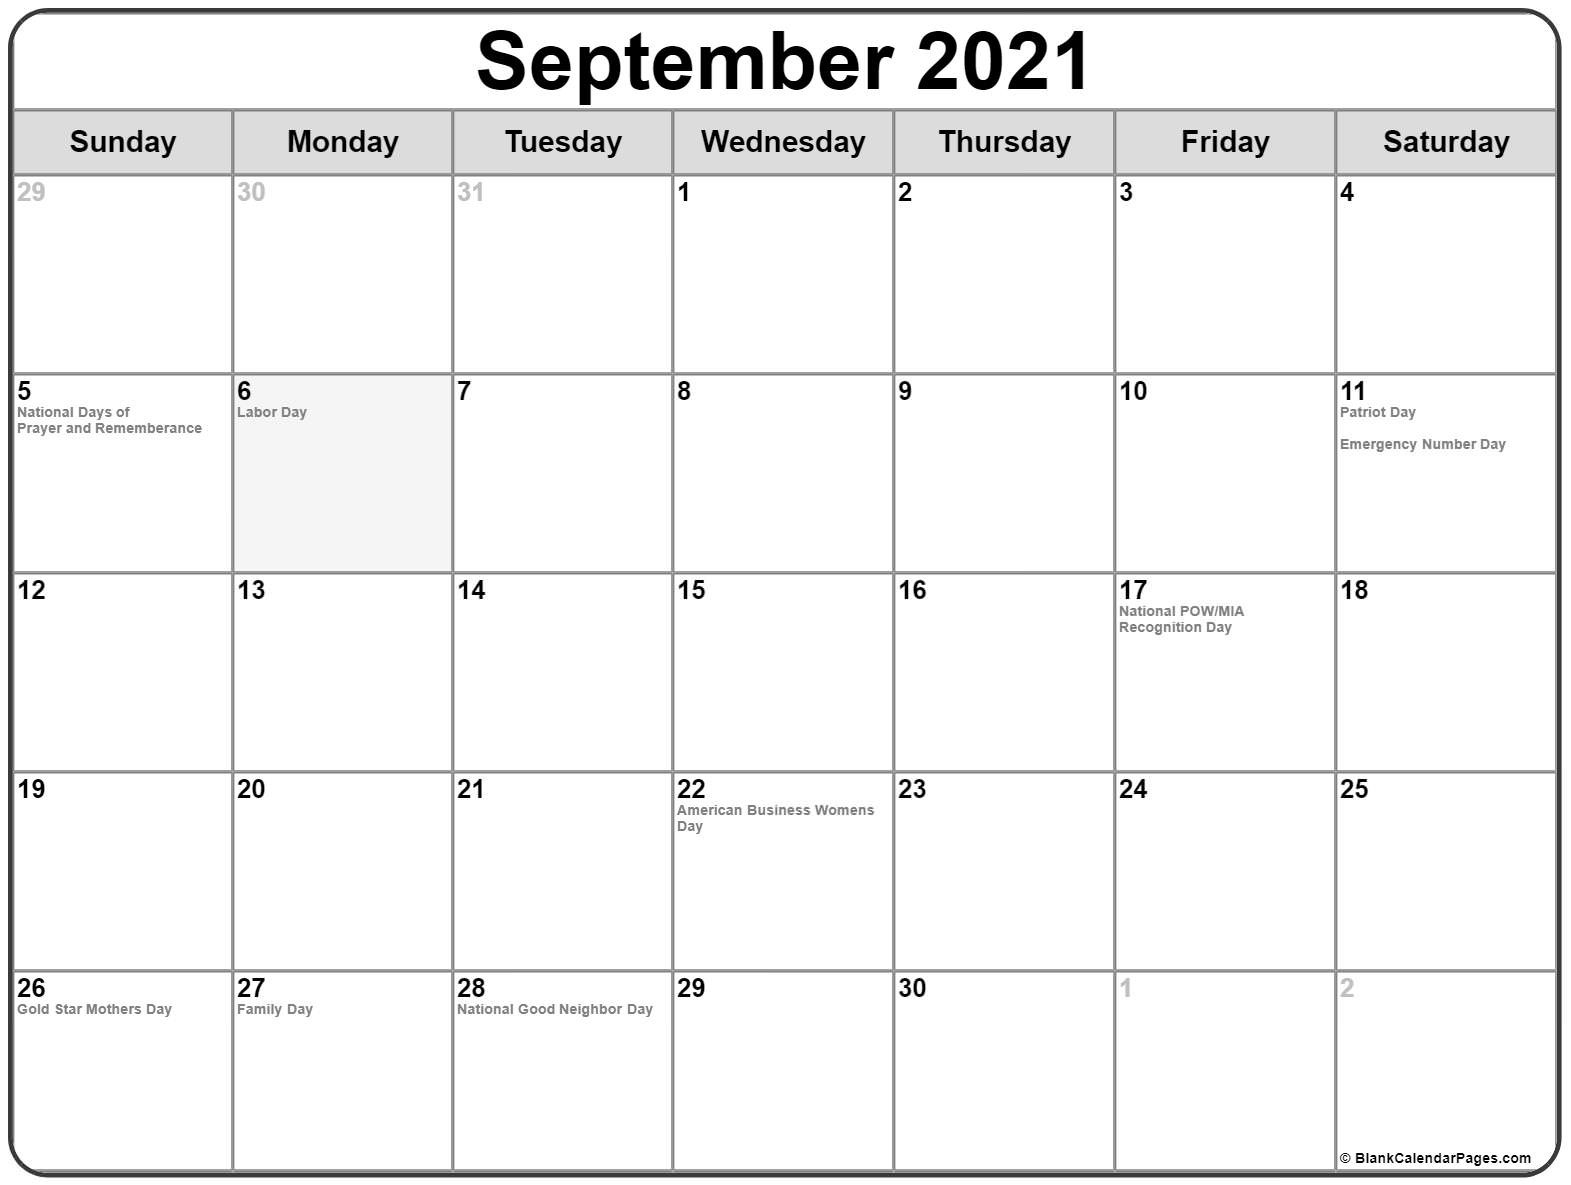 Collection Of September 2021 Calendars With Holidays-Monthly Calendar Printable October 2021